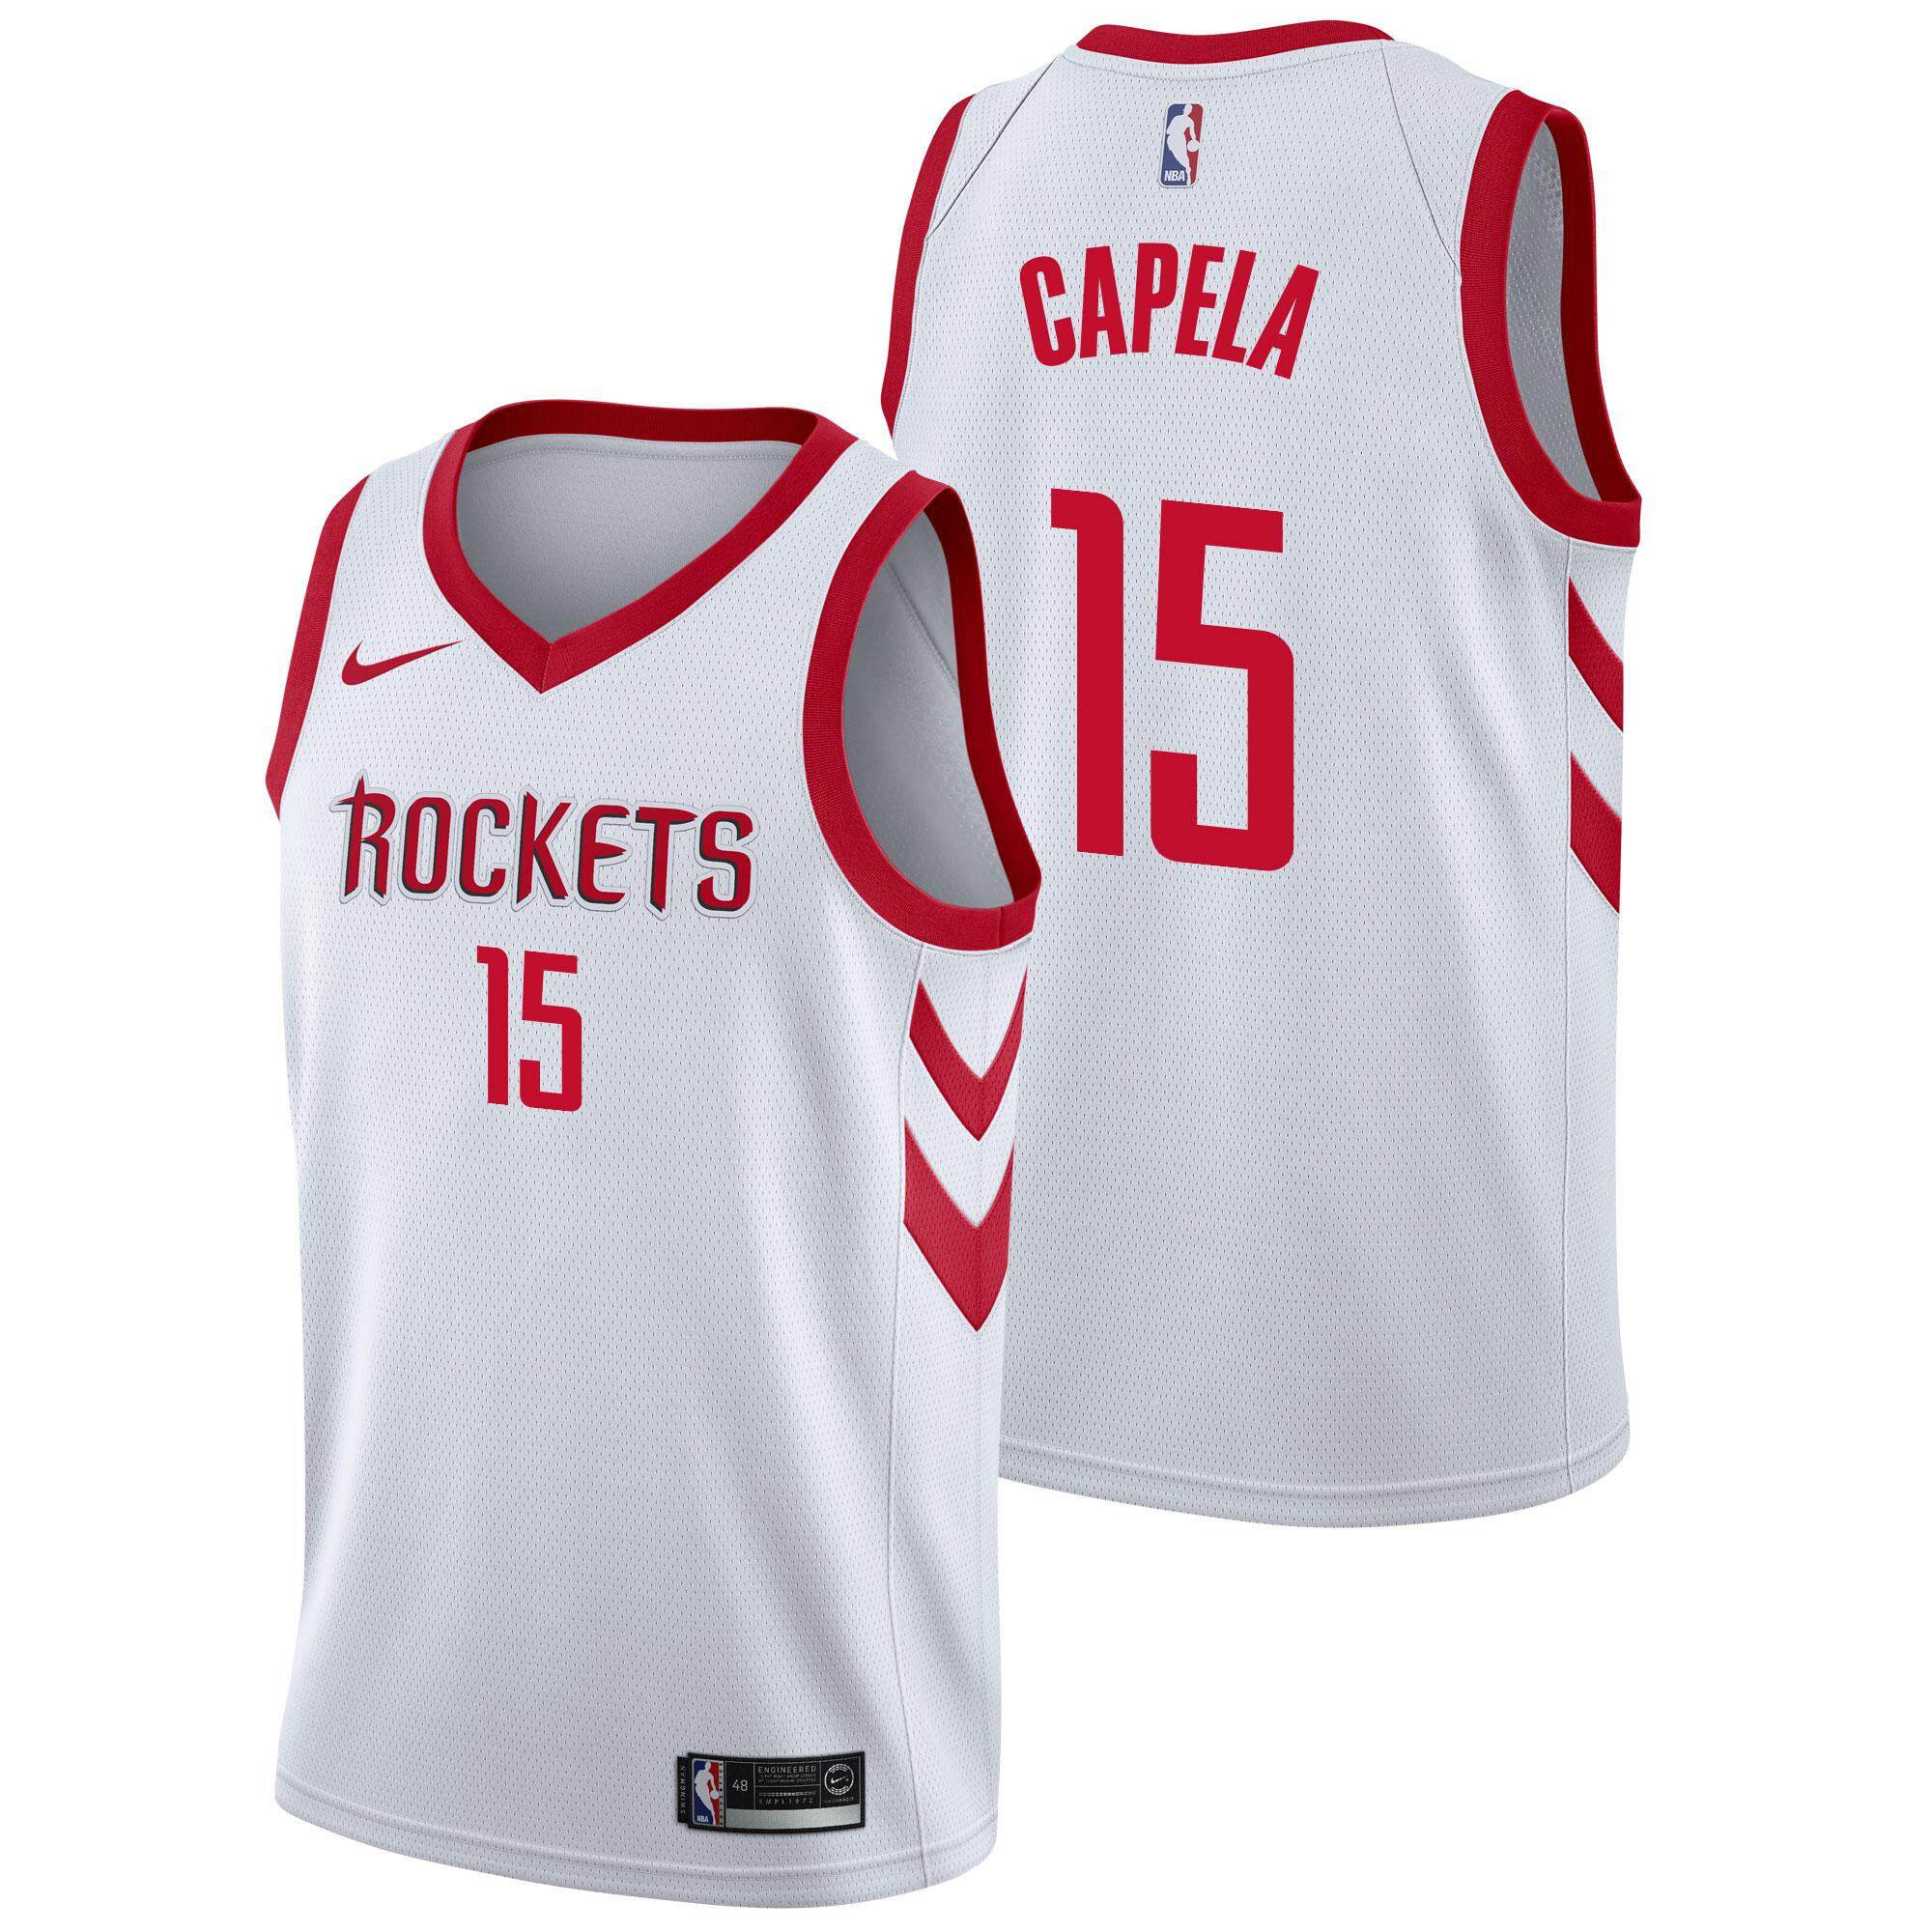 sale retailer 0b2fb 048c5 Original Nba Small Association Edition White No.15 Swingman Jersey Clint  Capela Houston Rockets For Man Basketball Clothes Chase Fashion Lightweight  ...